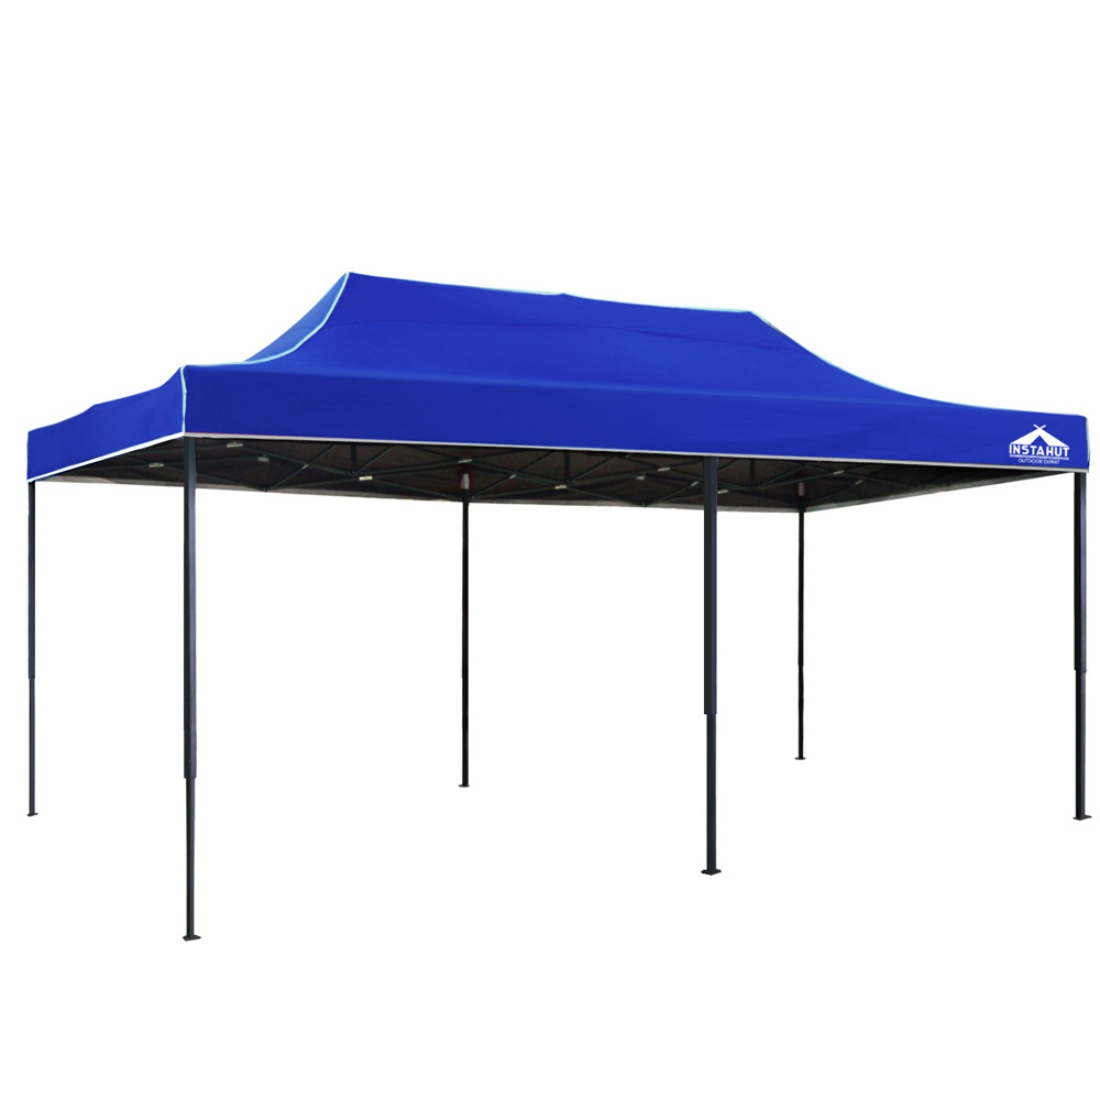 INSTAHUT 3m x 6m Pop-up Gazebo Garden Canopy Outdoor Marquee Blue